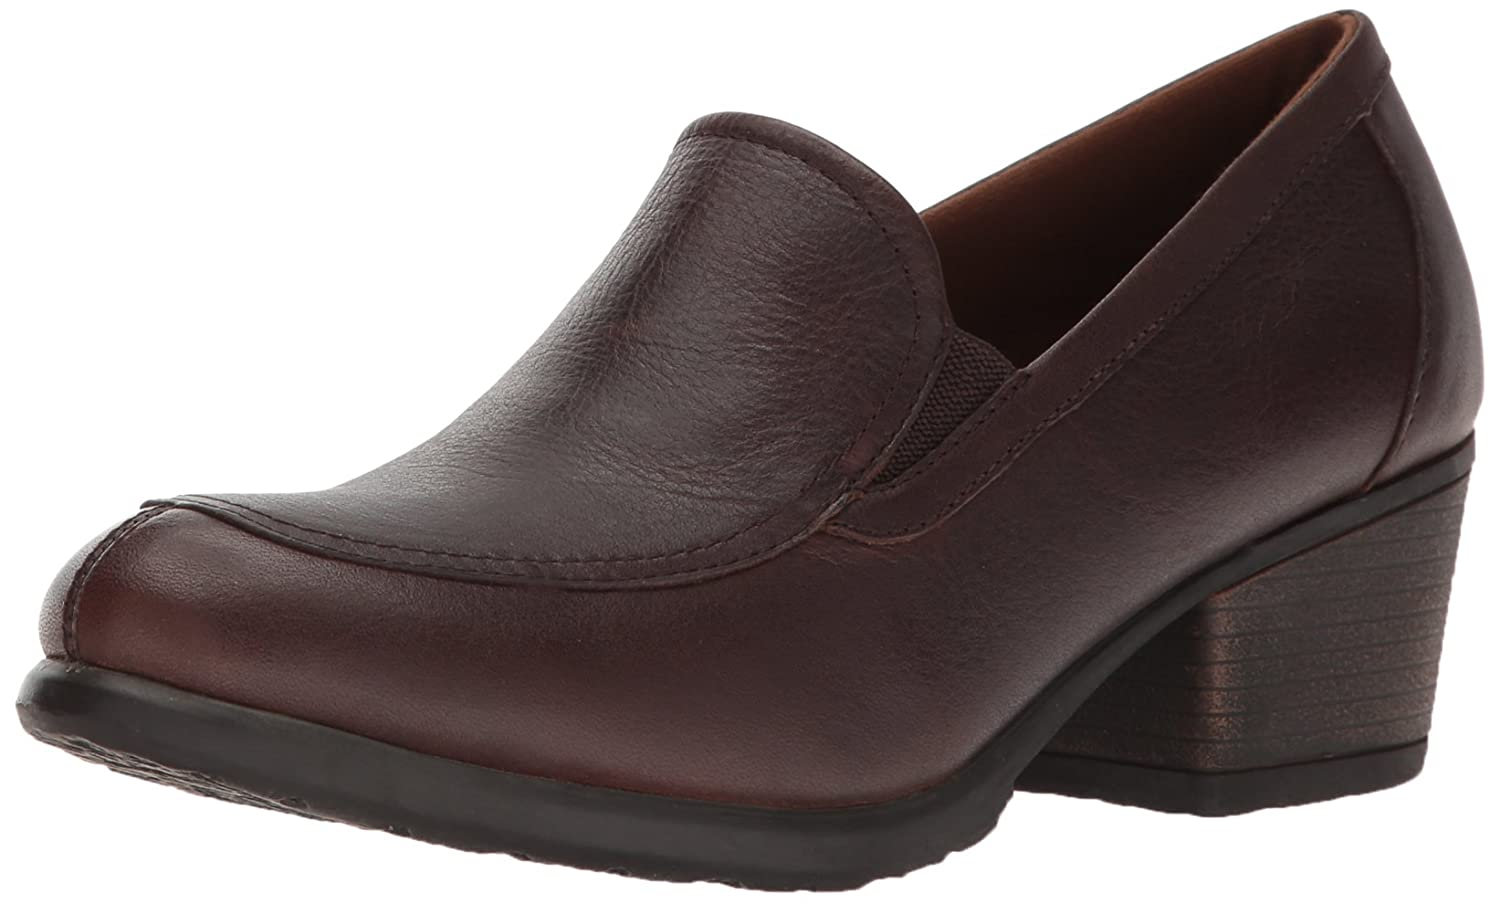 Eastland Women's Tonie Twin Gore Slip On B01N7PNALC 7 B(M) US|Brown